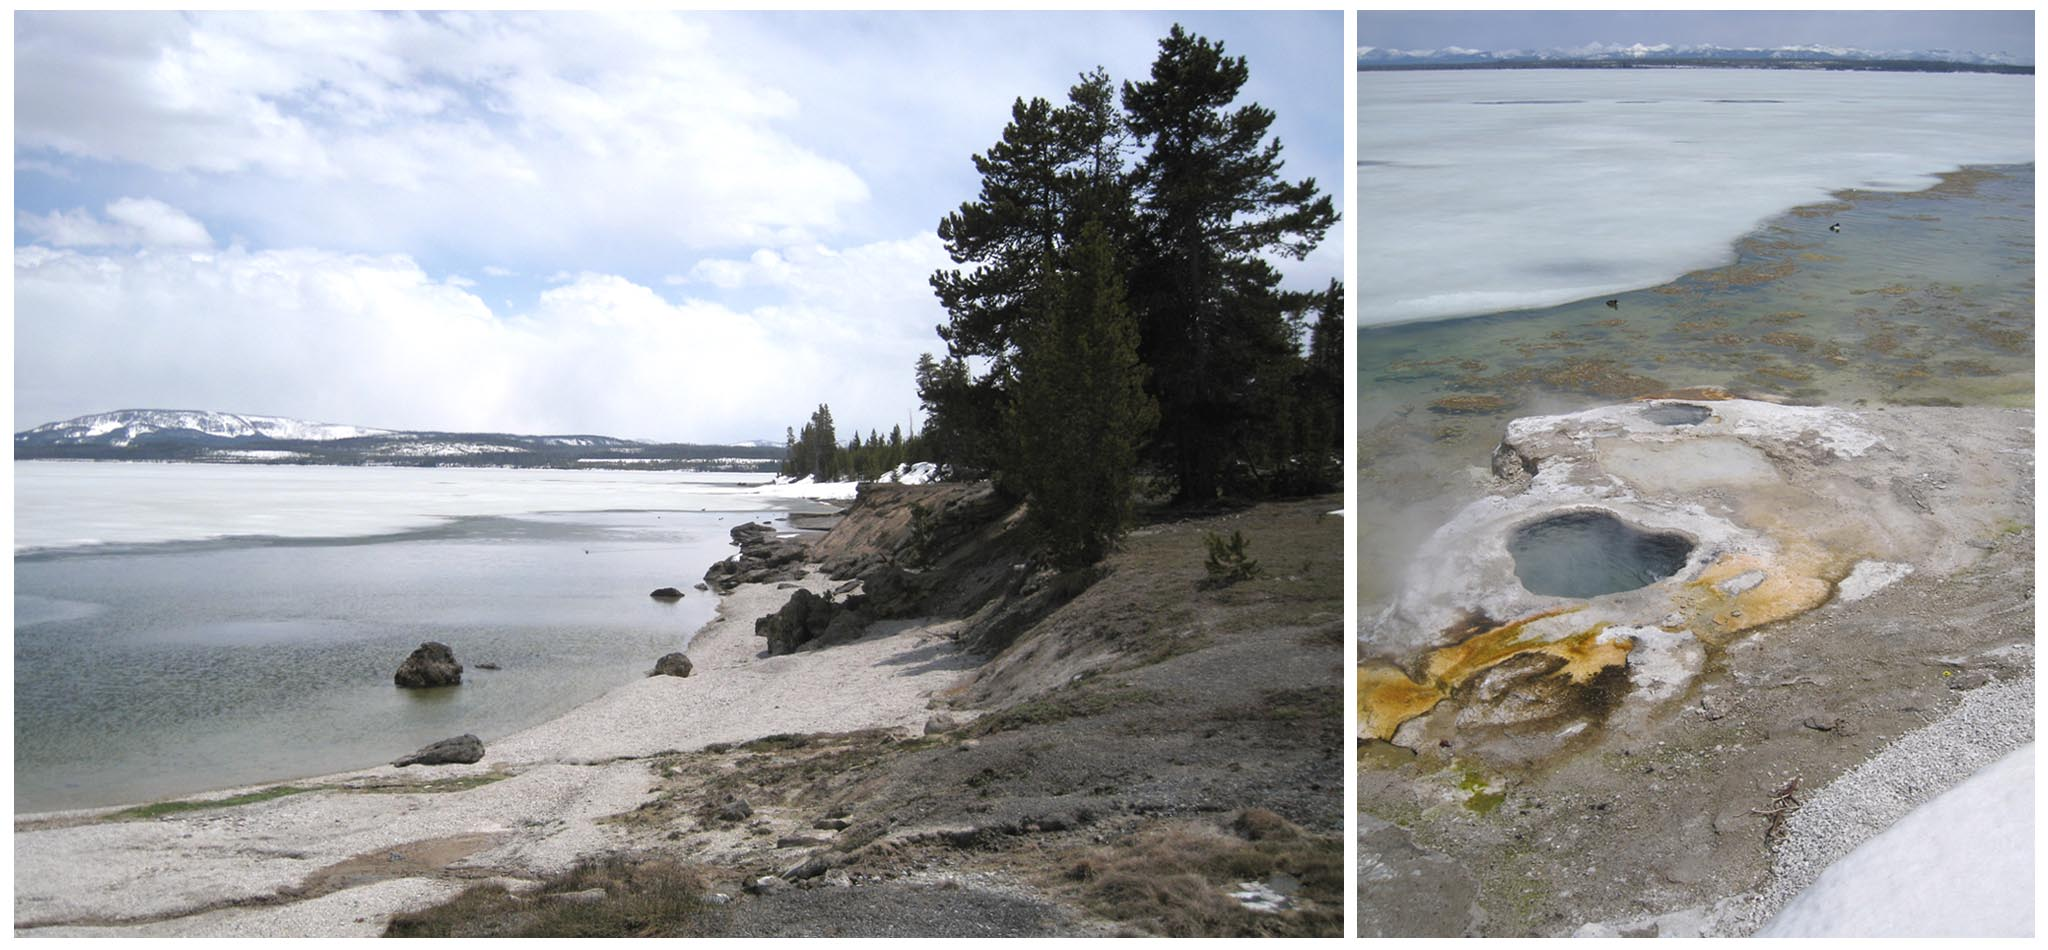 Yellowstone Lake - West Thumb - Geyser Basin // Thermal features keep the ice away at Yellowstone Lake